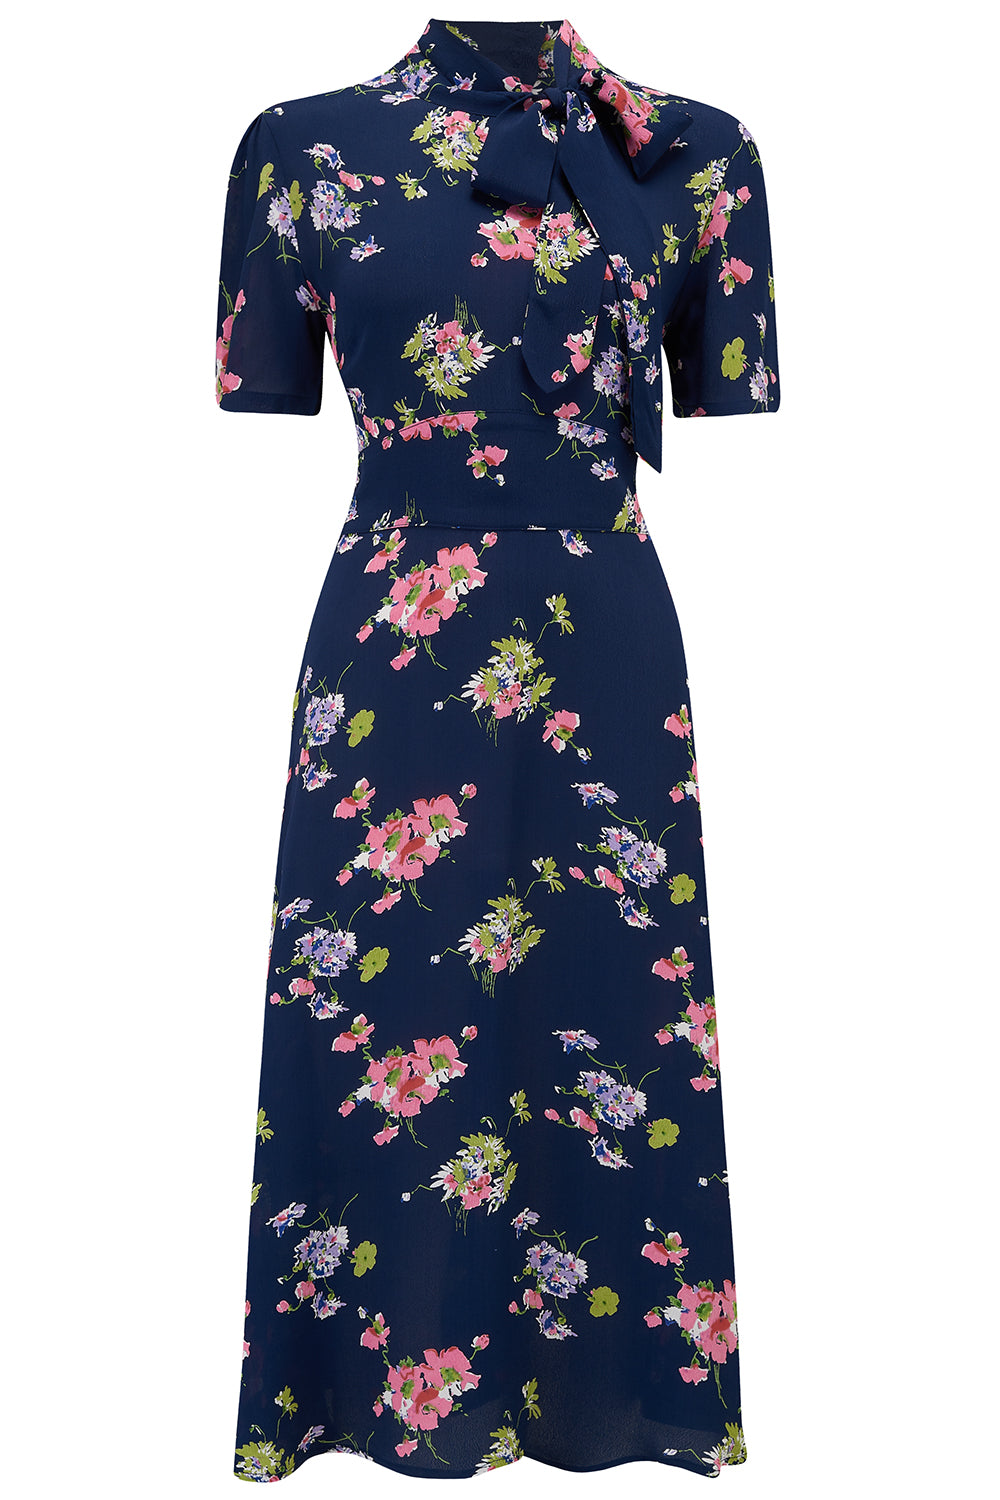 1940s Dress Styles Kathy Dress in Navy Mayflower  A Classic 1940s Inspired sophisticated True Vintage Style £79.00 AT vintagedancer.com